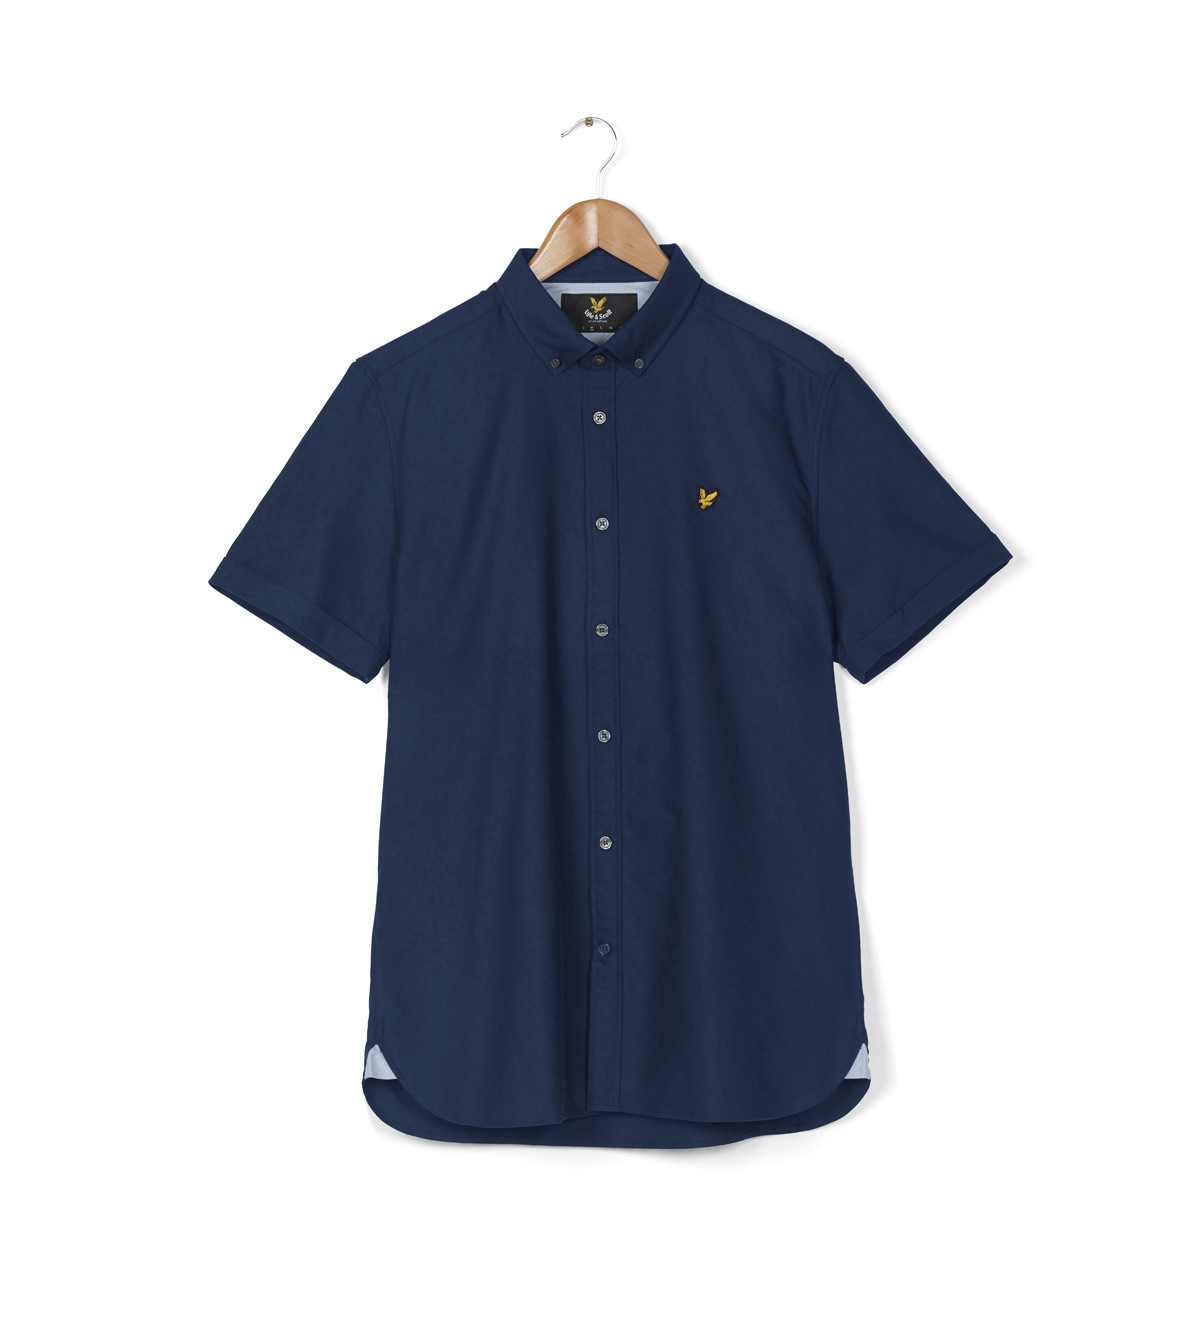 Harringtonka Lyle & Scott